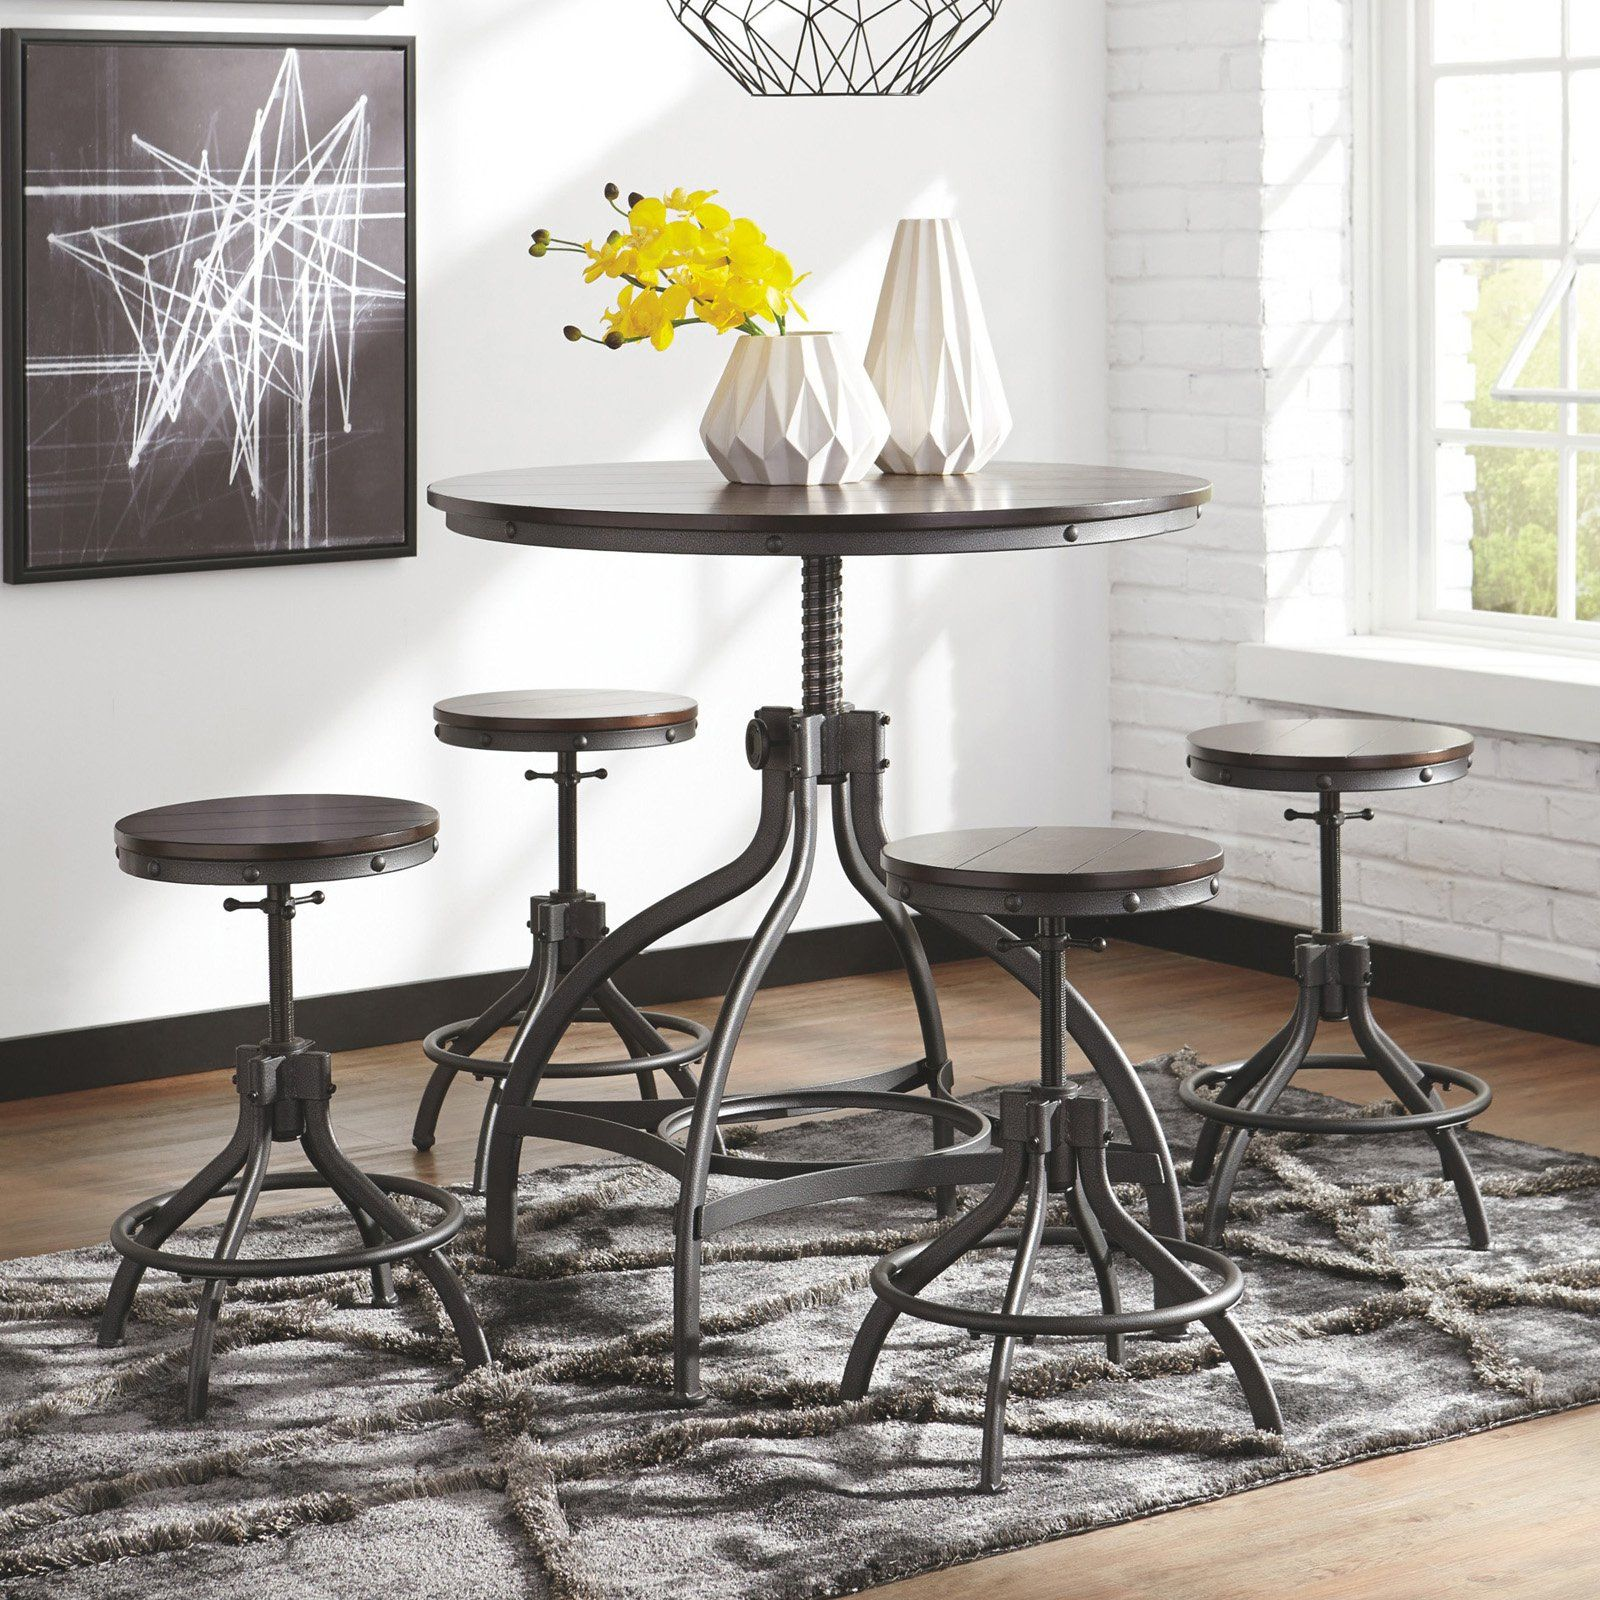 24+ Odium counter height dining room table Best Seller